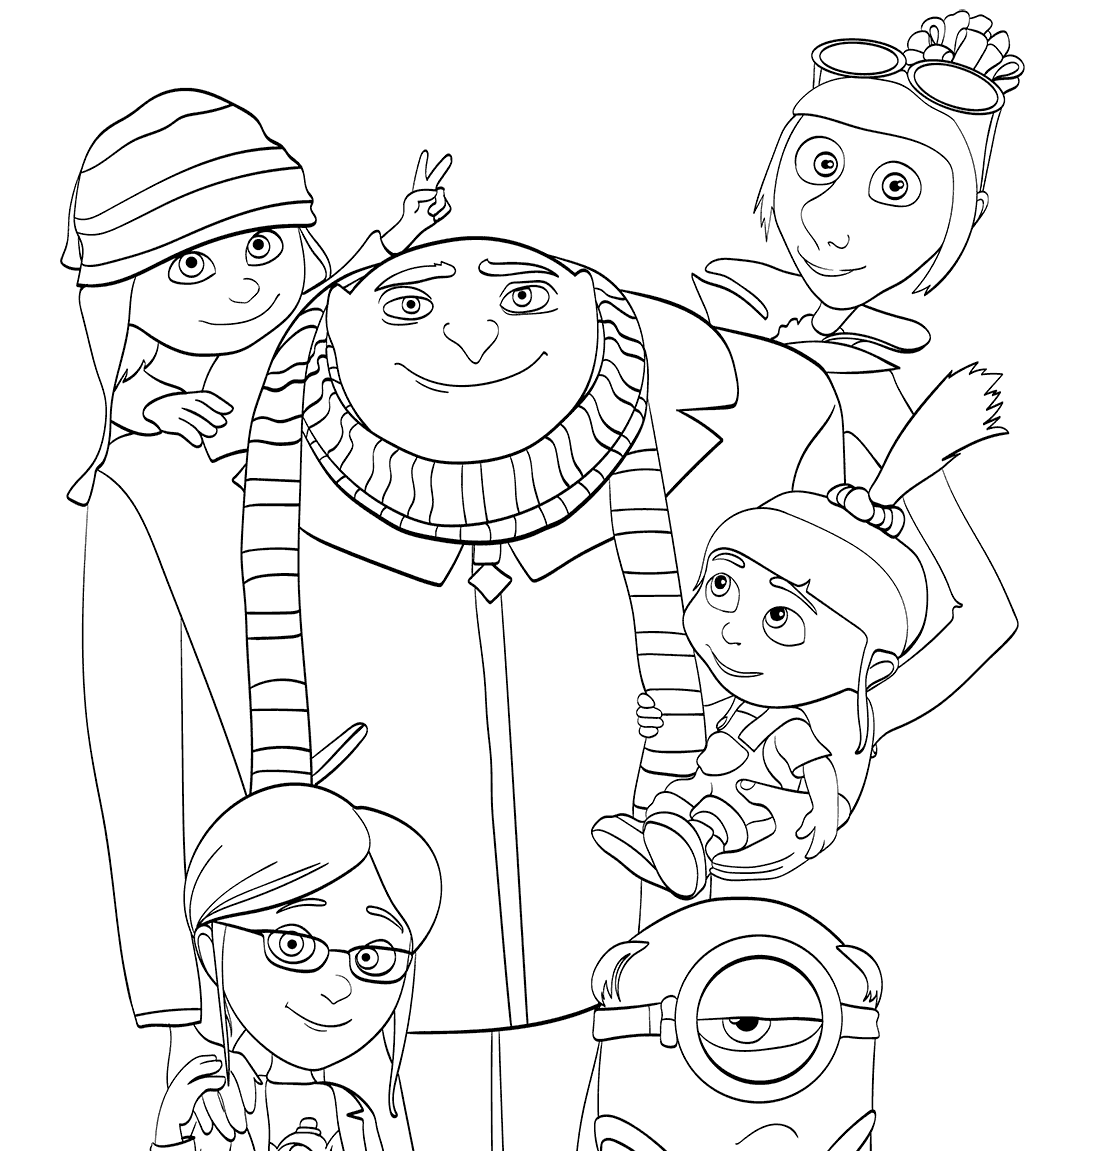 despicable me minions coloring pages printable despicable me coloring pages for kids despicable me coloring pages minions